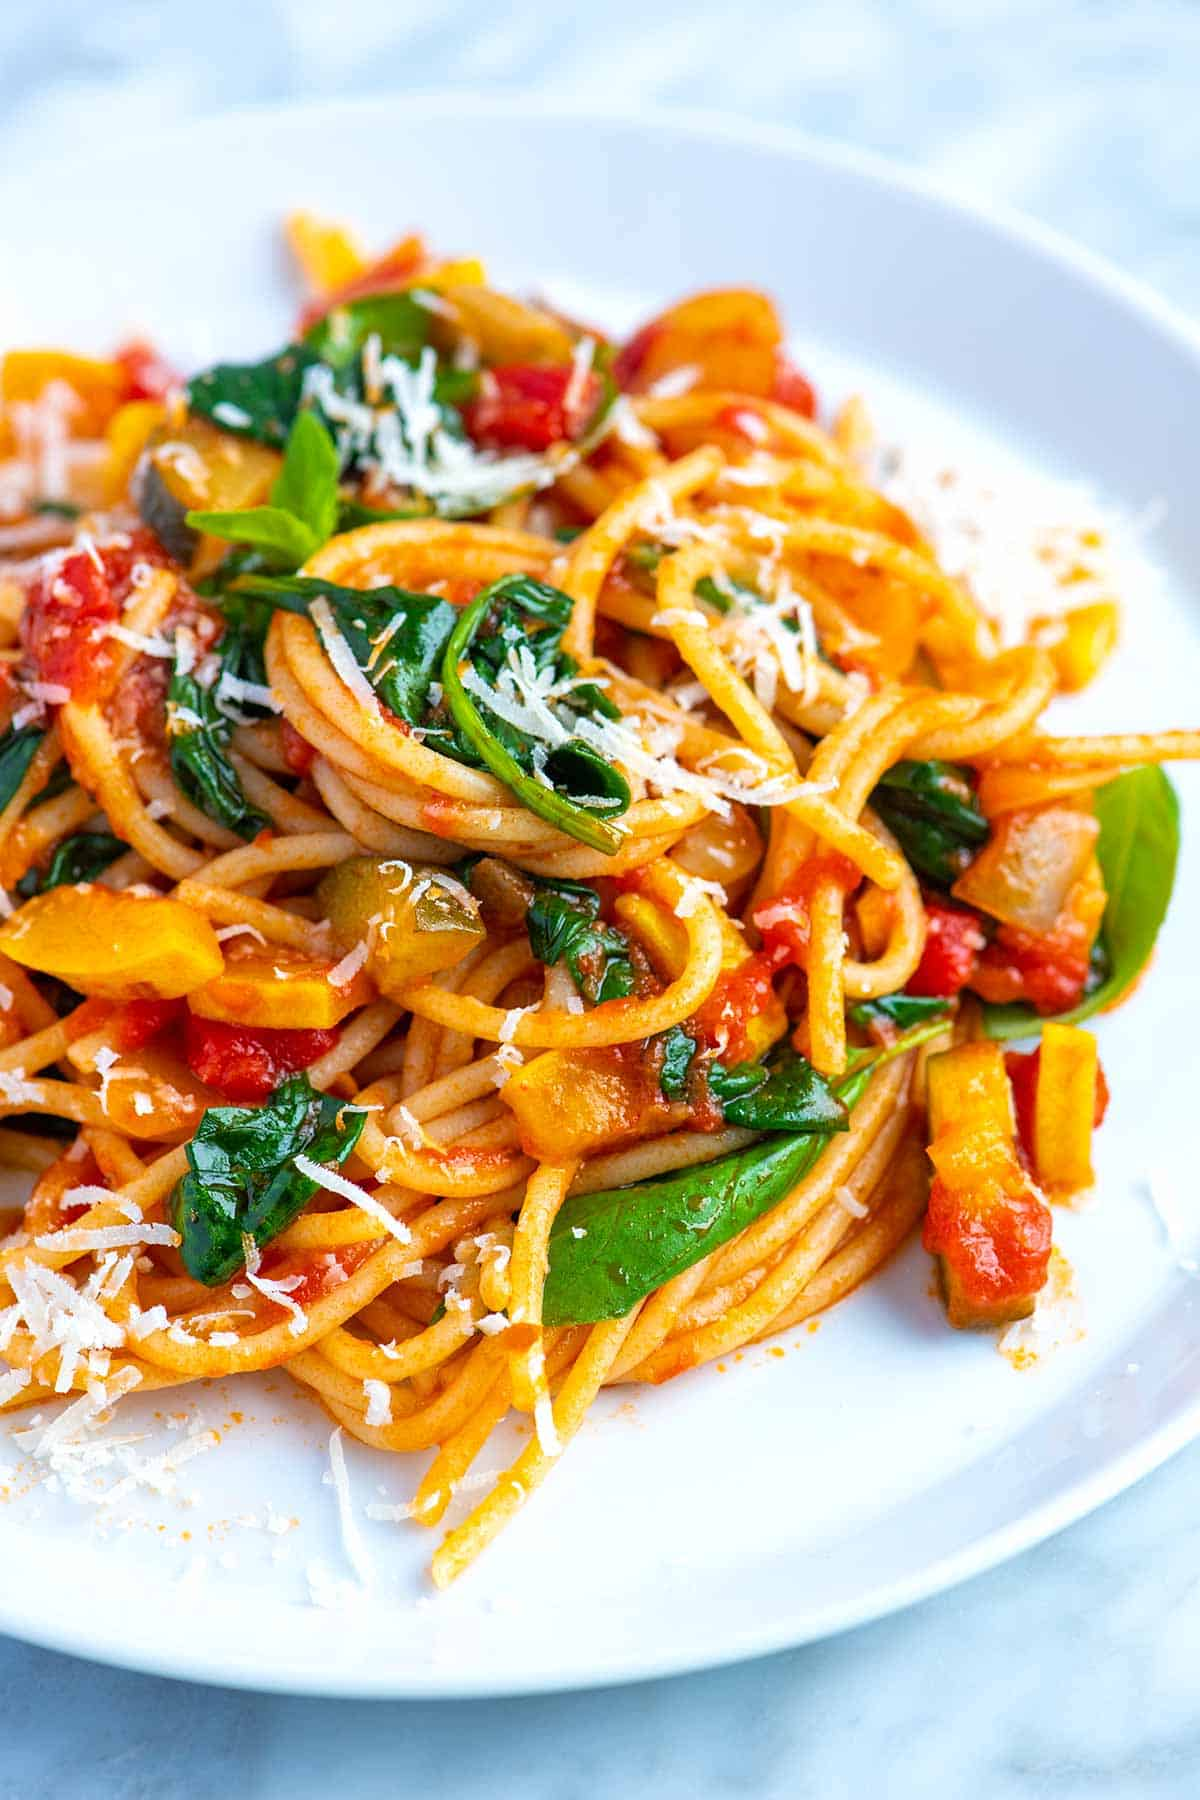 Think of this as a versatile vegetarian pasta recipe that works wonders with a variety of vegetables so you can use whatever you have in the fridge.